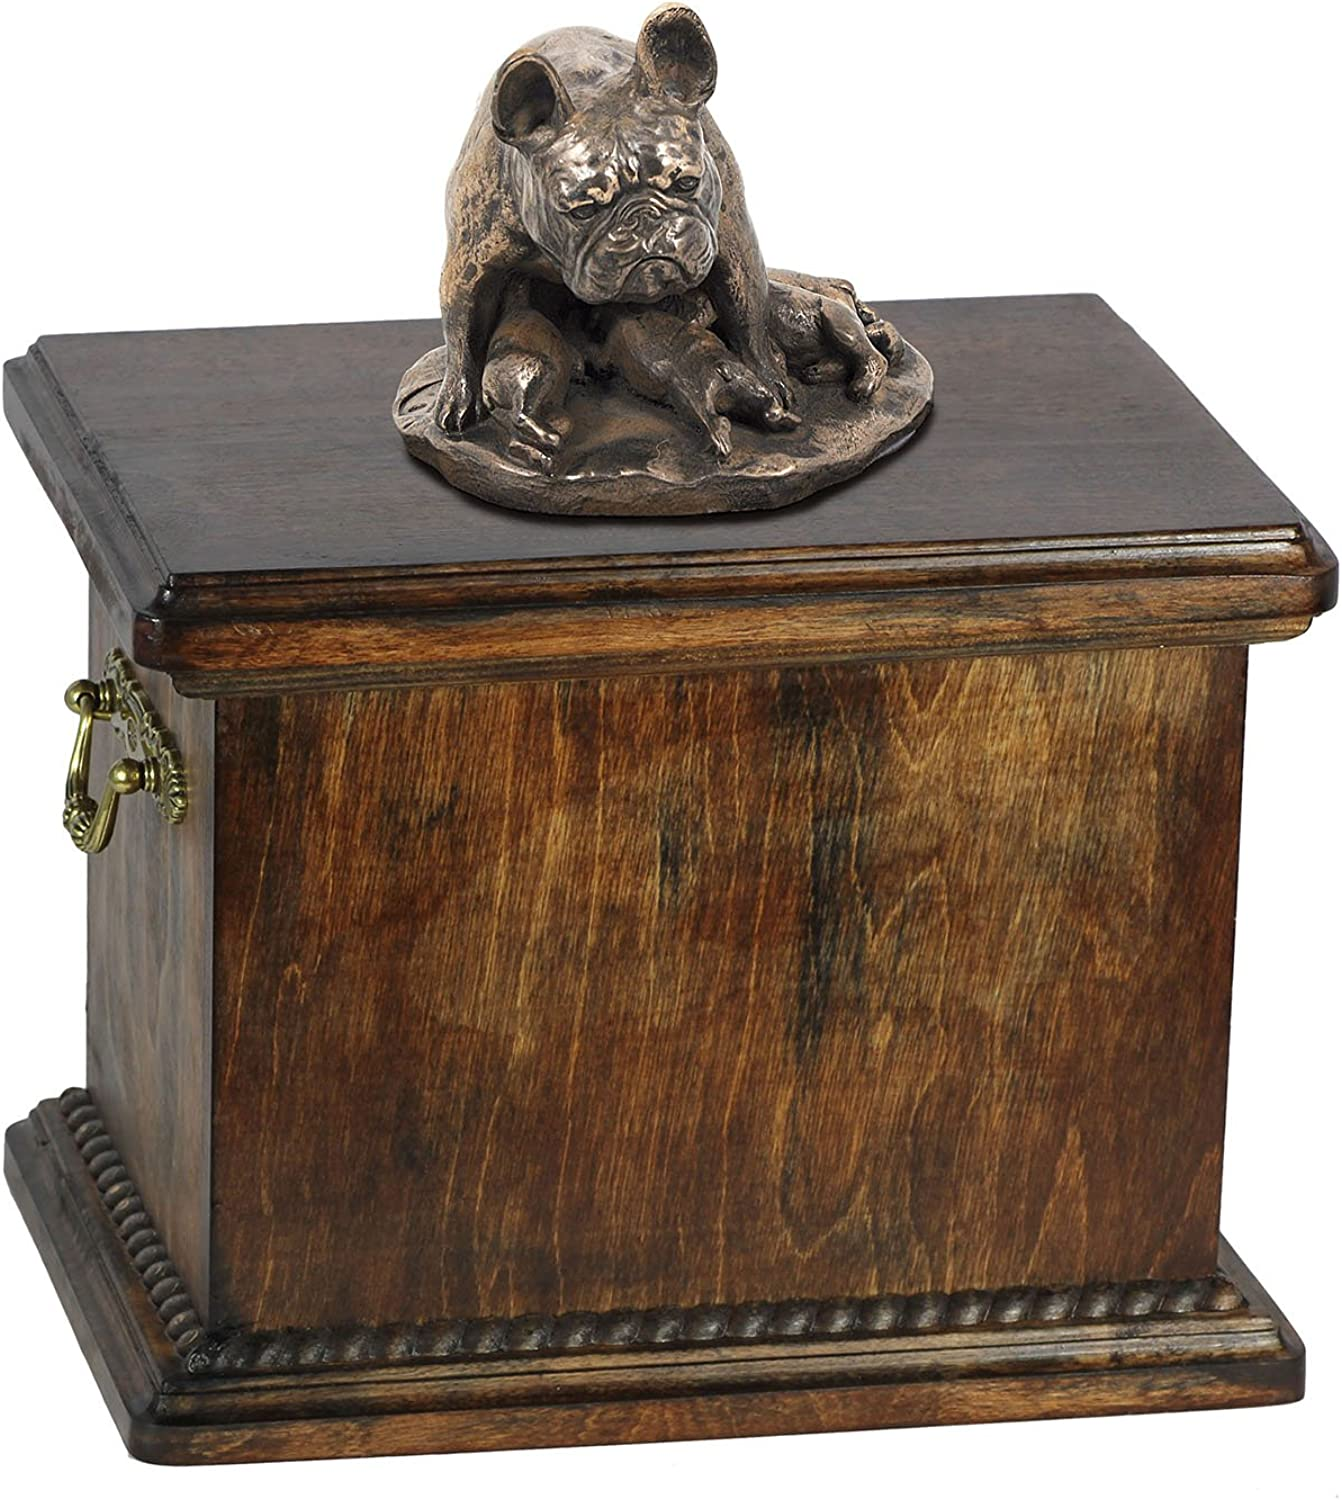 French Bulldog (mama), memorial, urn for dog's ashes, with dog statue, ArtDog